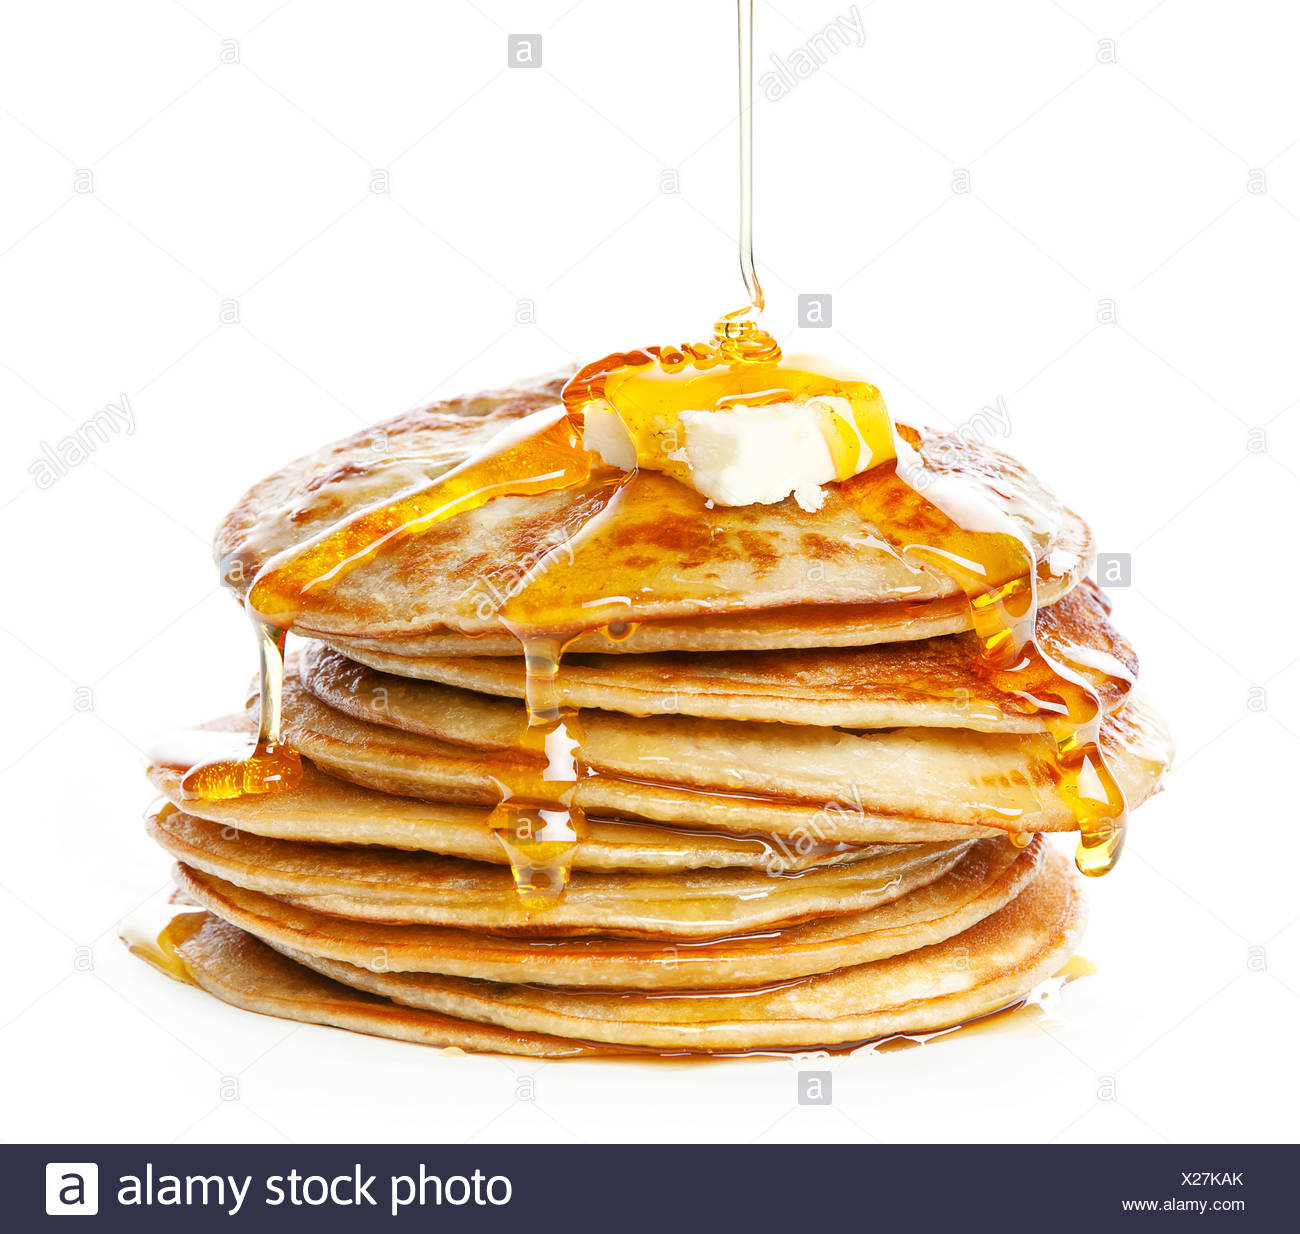 Stack of Small pancakes in syrup on white background - Stock Image